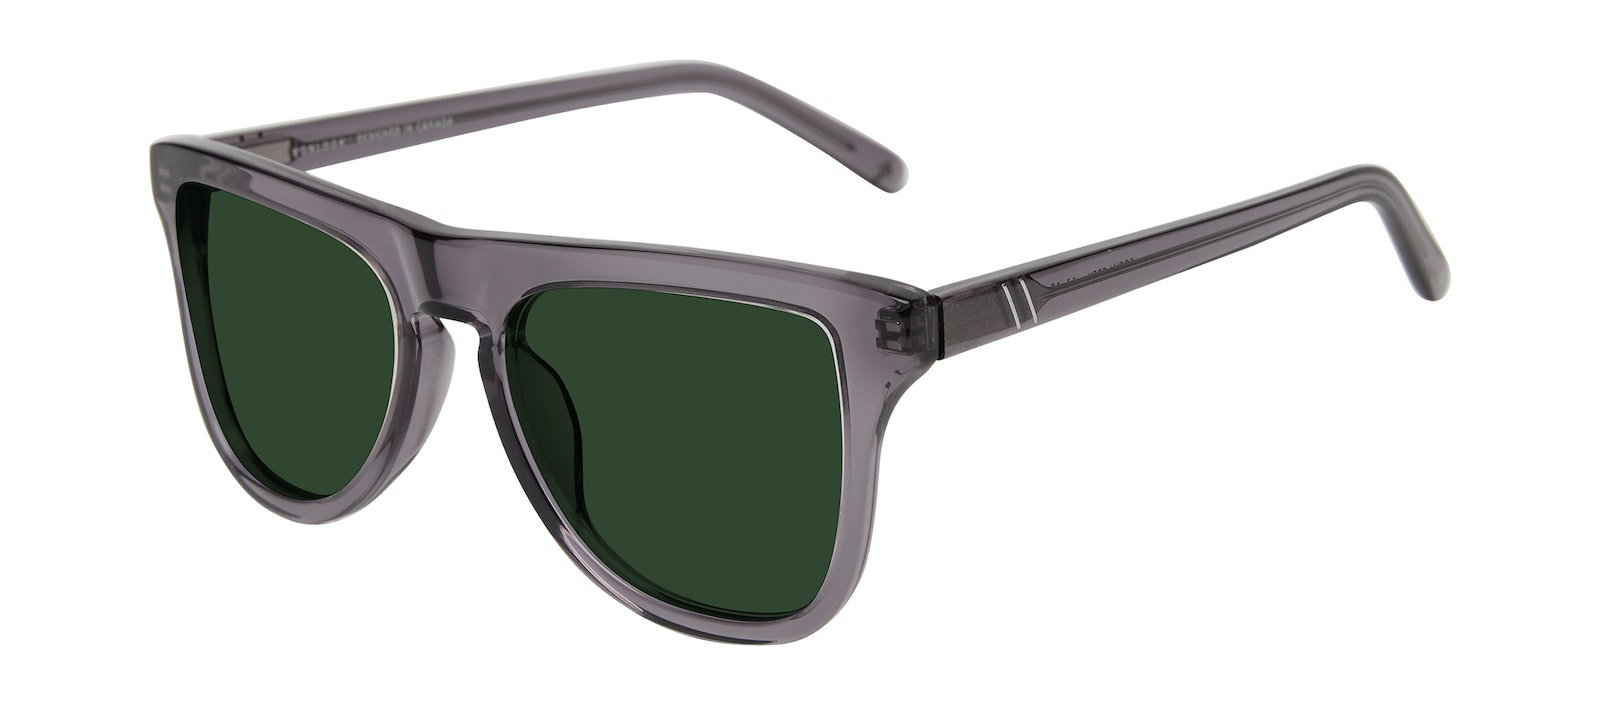 Affordable Fashion Glasses Square Sunglasses Men Social Grey Tilt